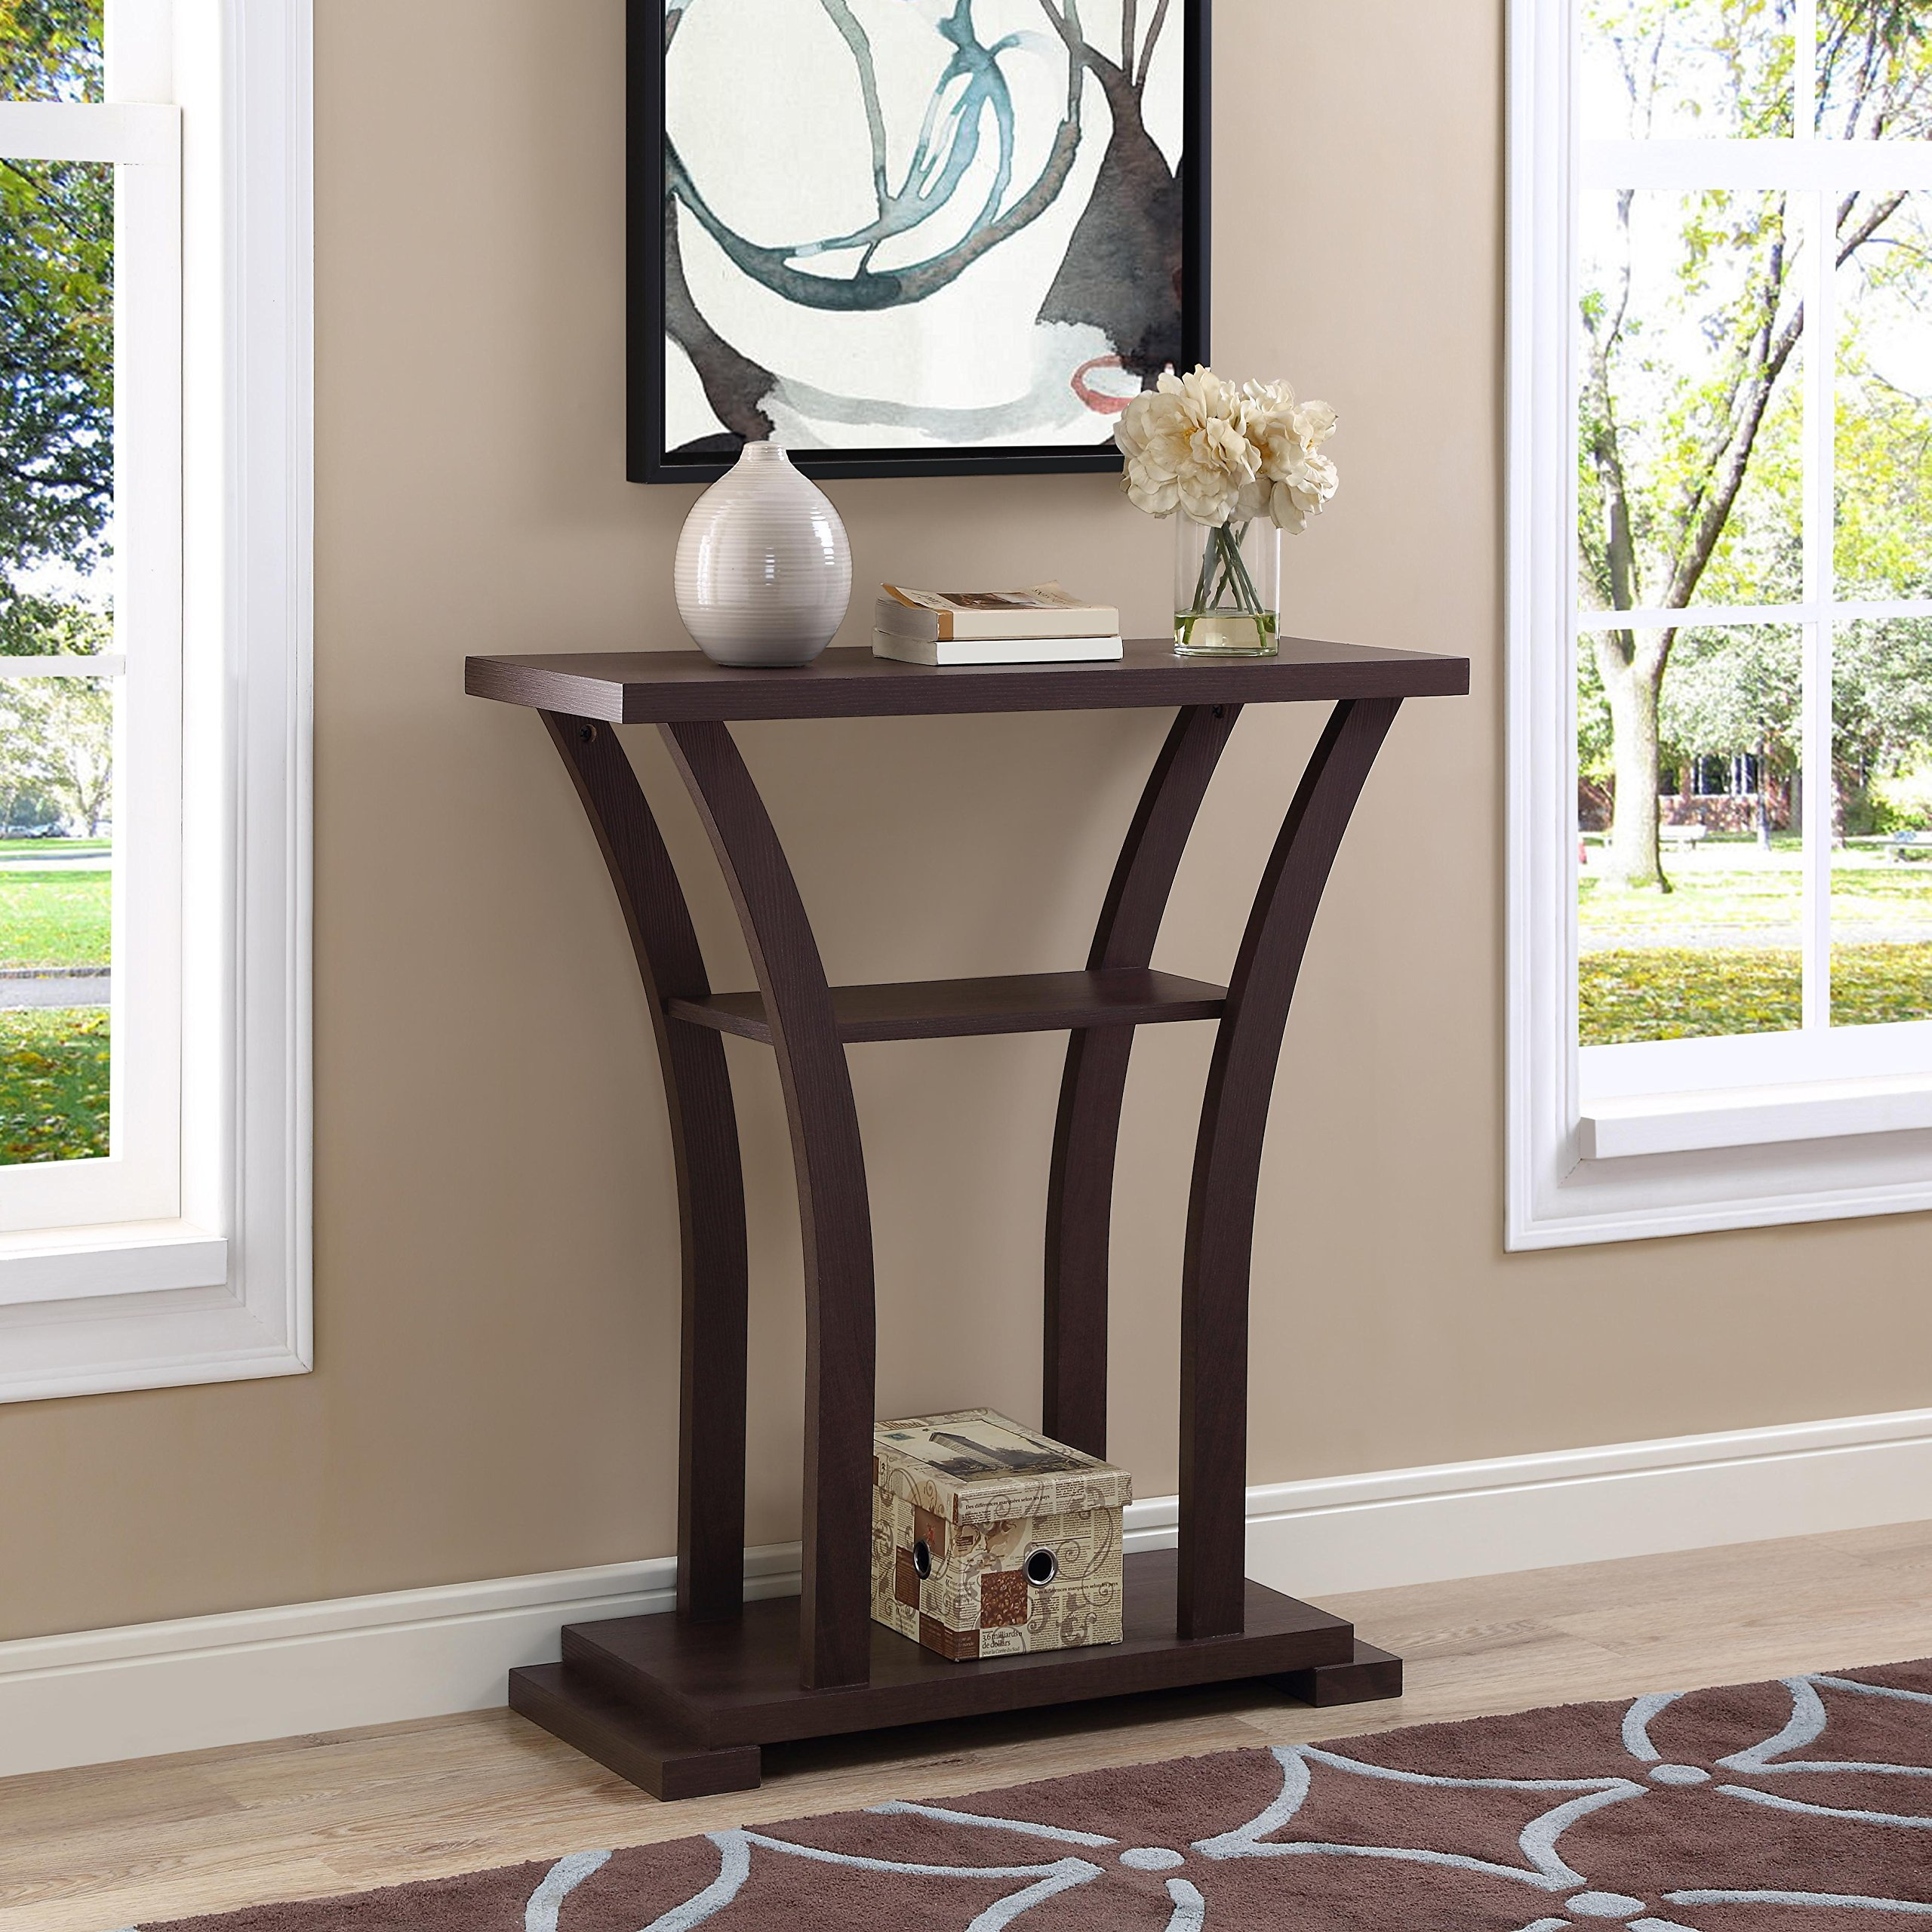 Cappuccino Finish Hall Console Sofa Entryway Accent Table with Curved Legs